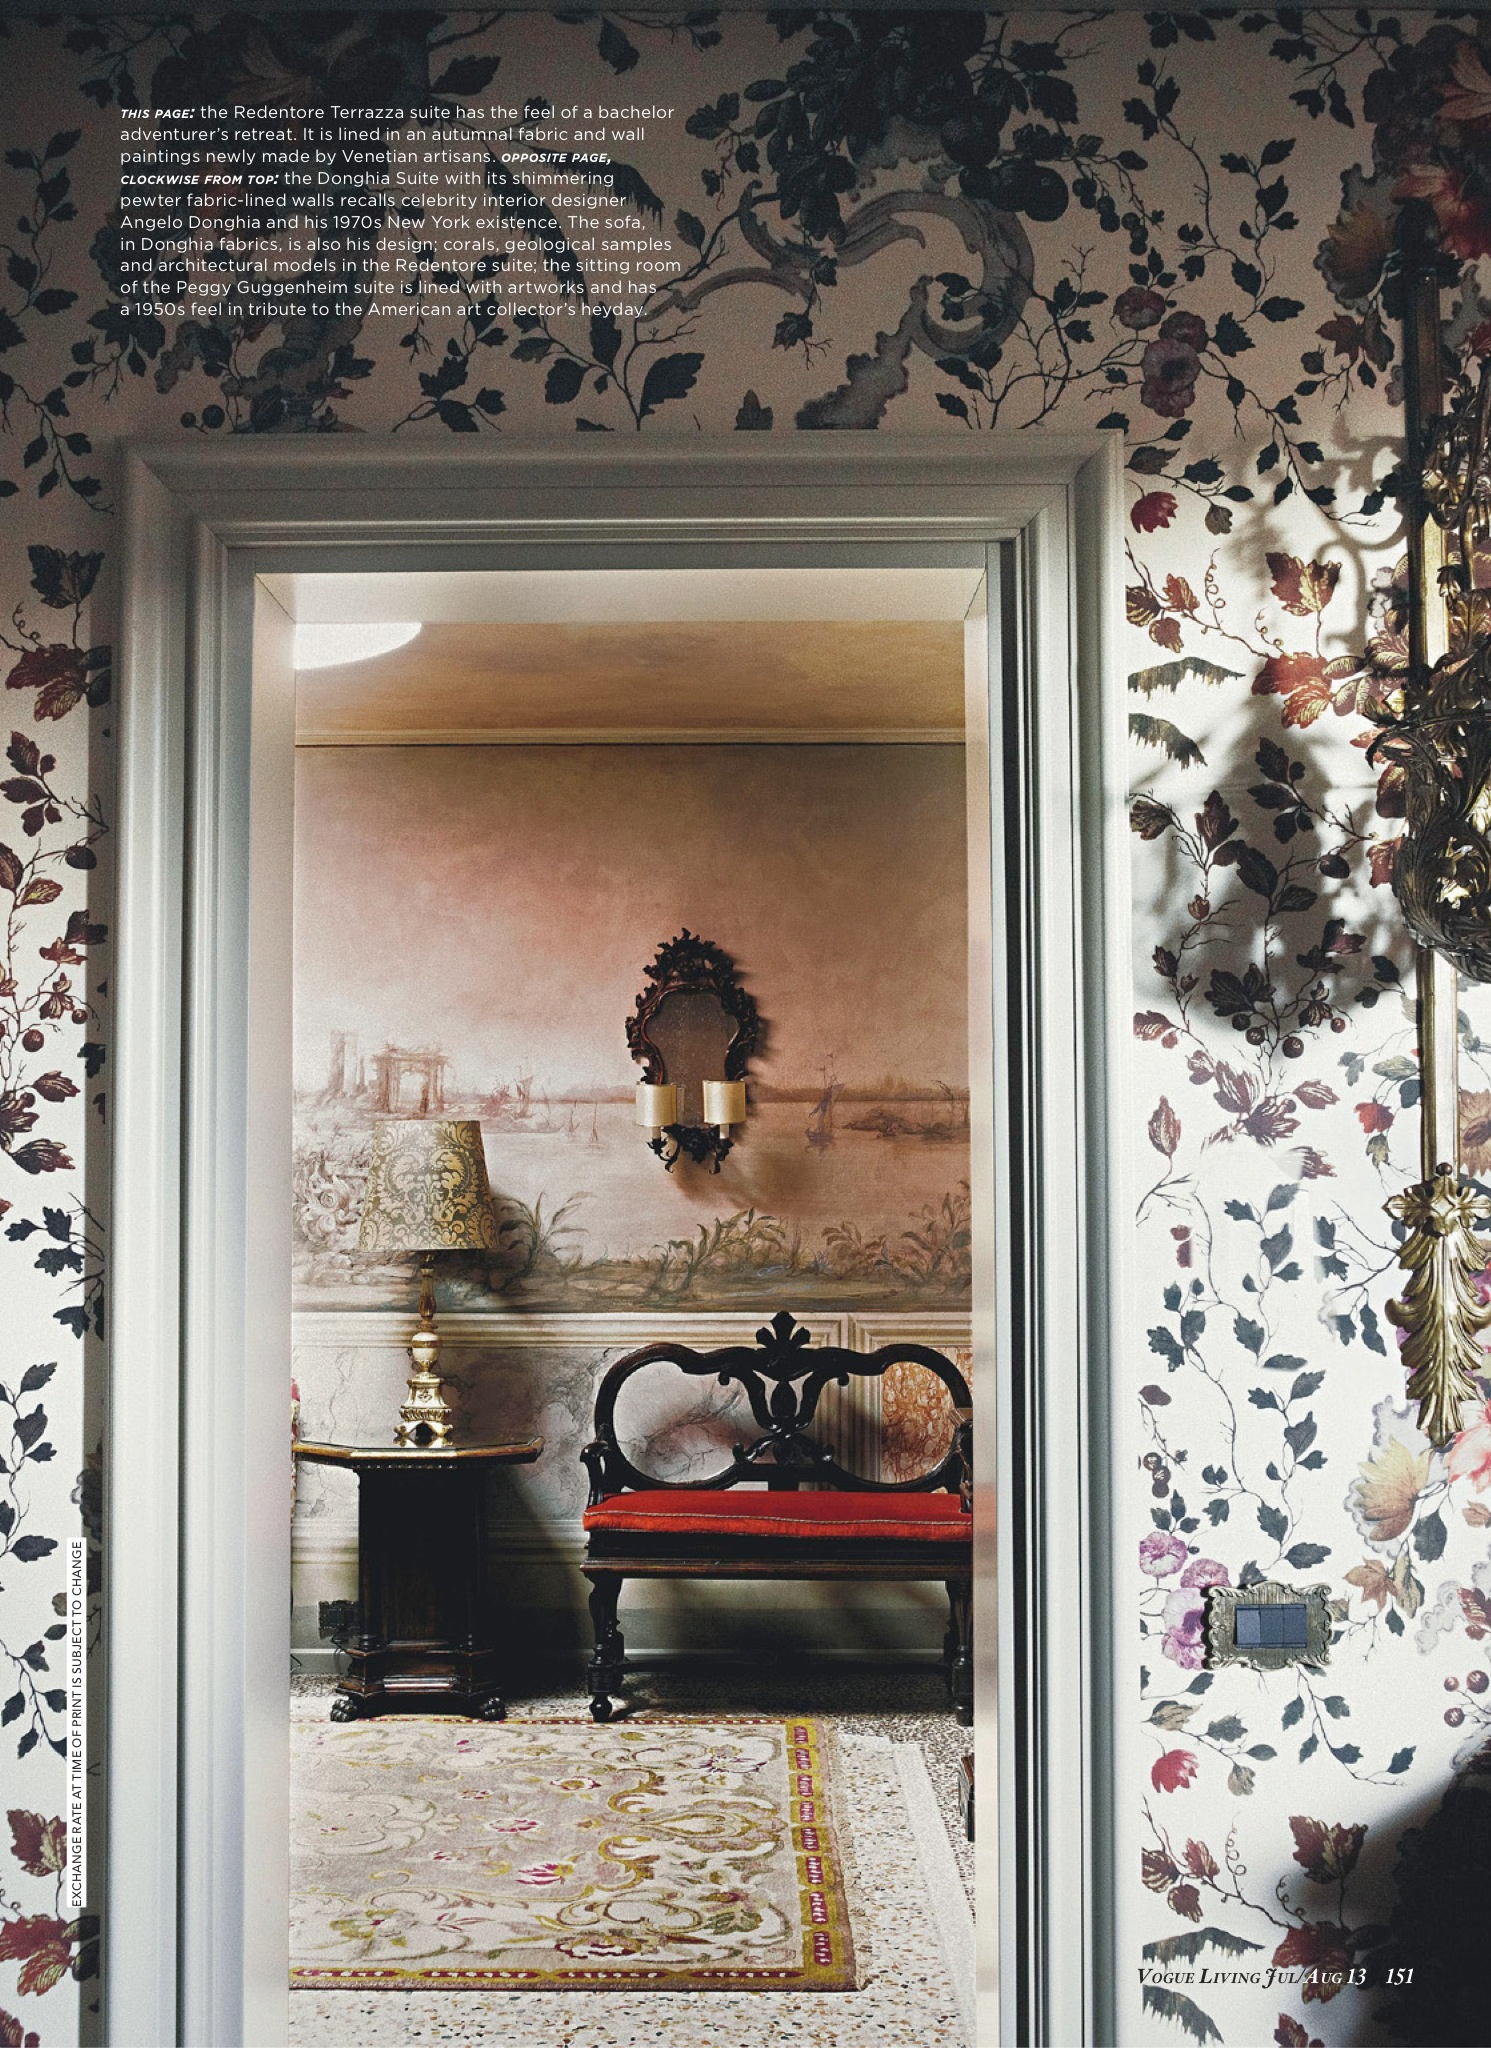 Gritti Palace Hotel - Venice - Vogue Living AUS, 2013